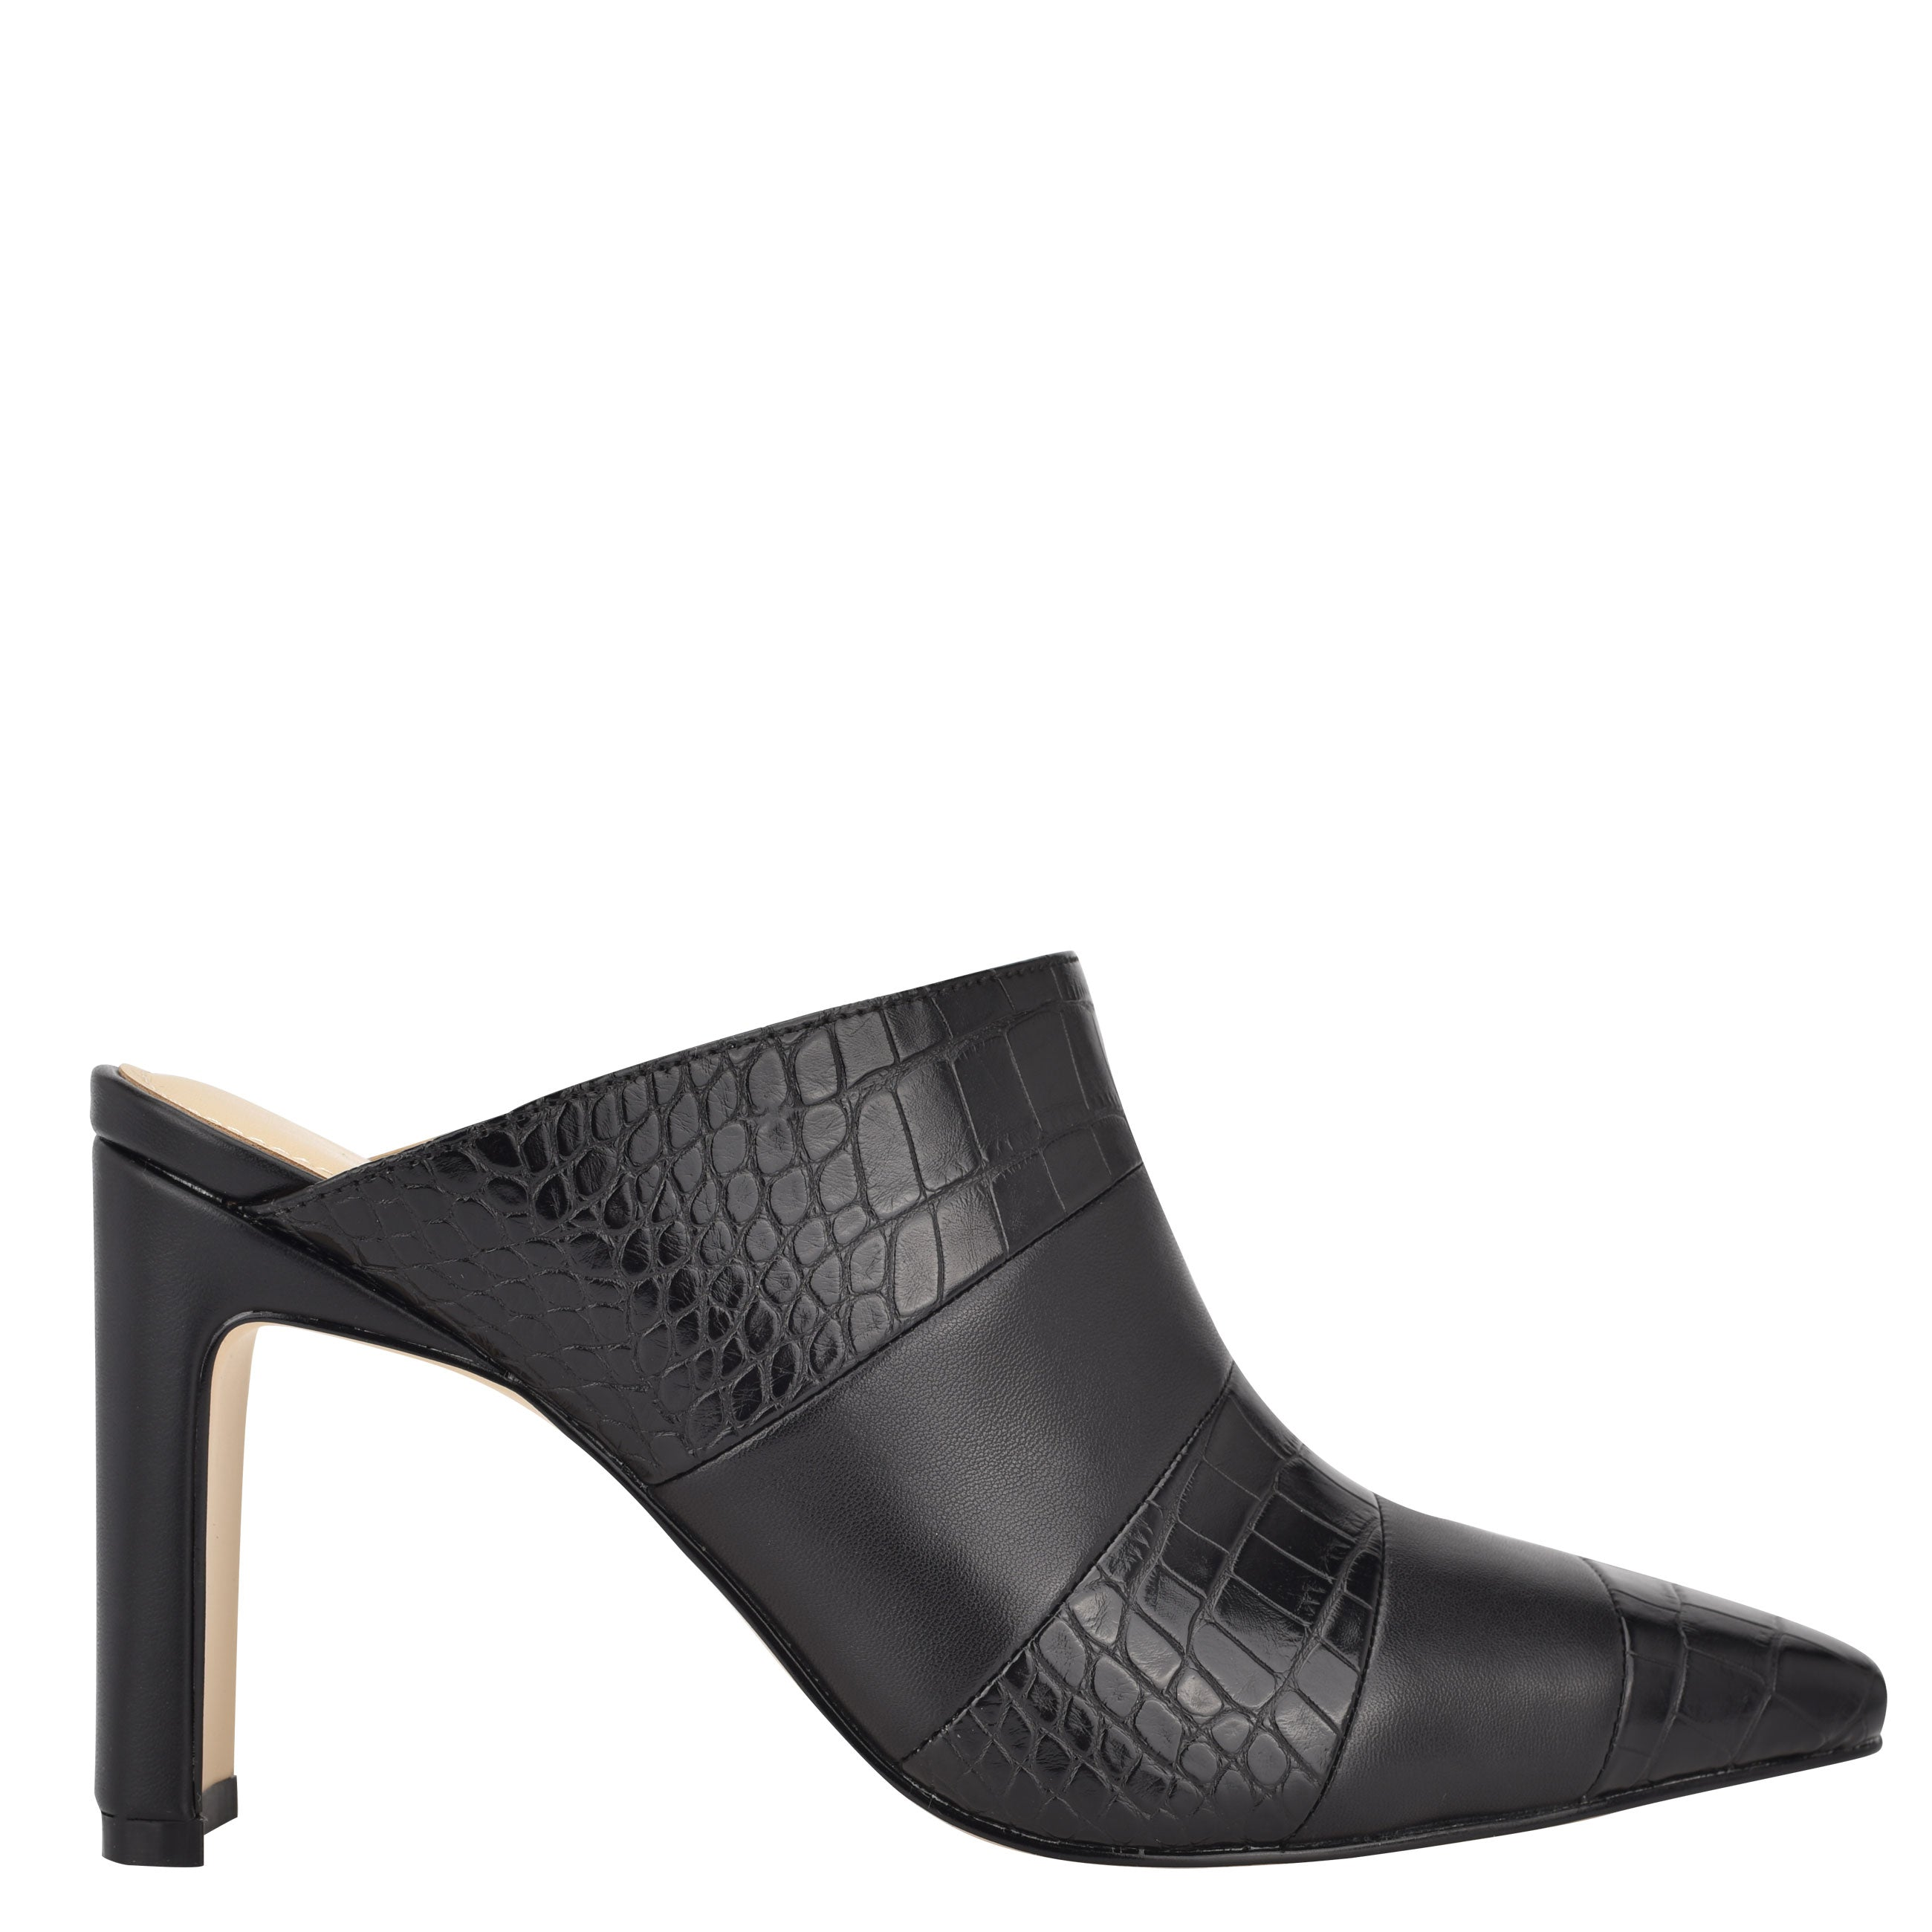 NINEWEST Iella Heeled Mules